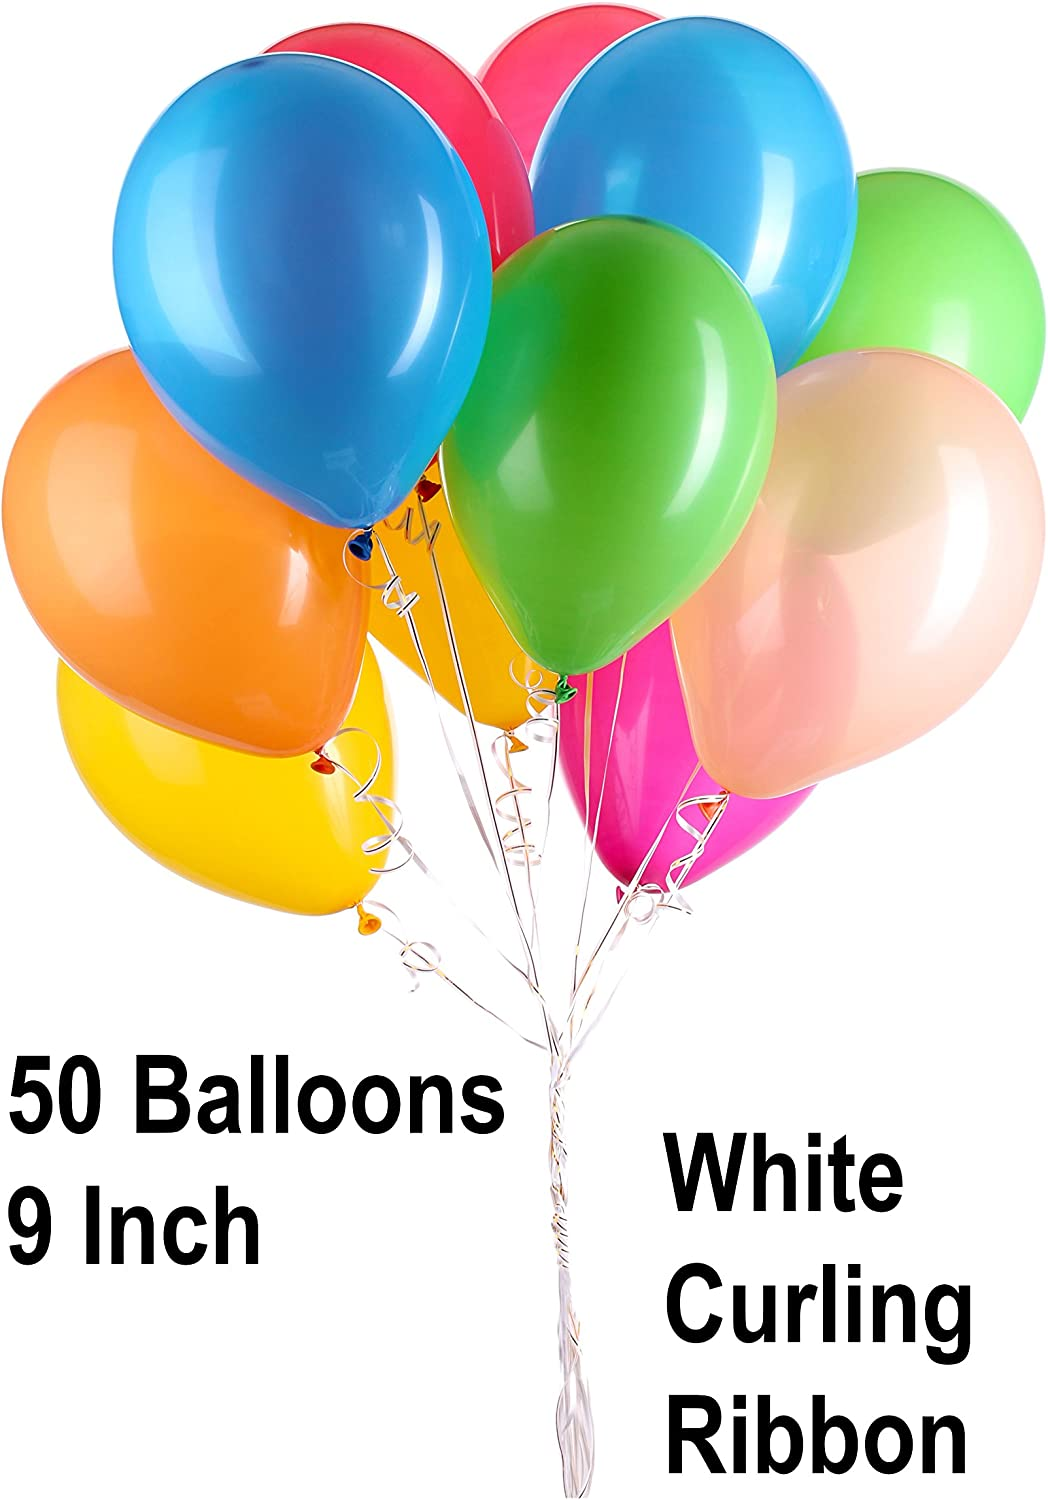 Helium Balloon Pump Tank for balloons 12 Balloon Weights White Curling Ribbon